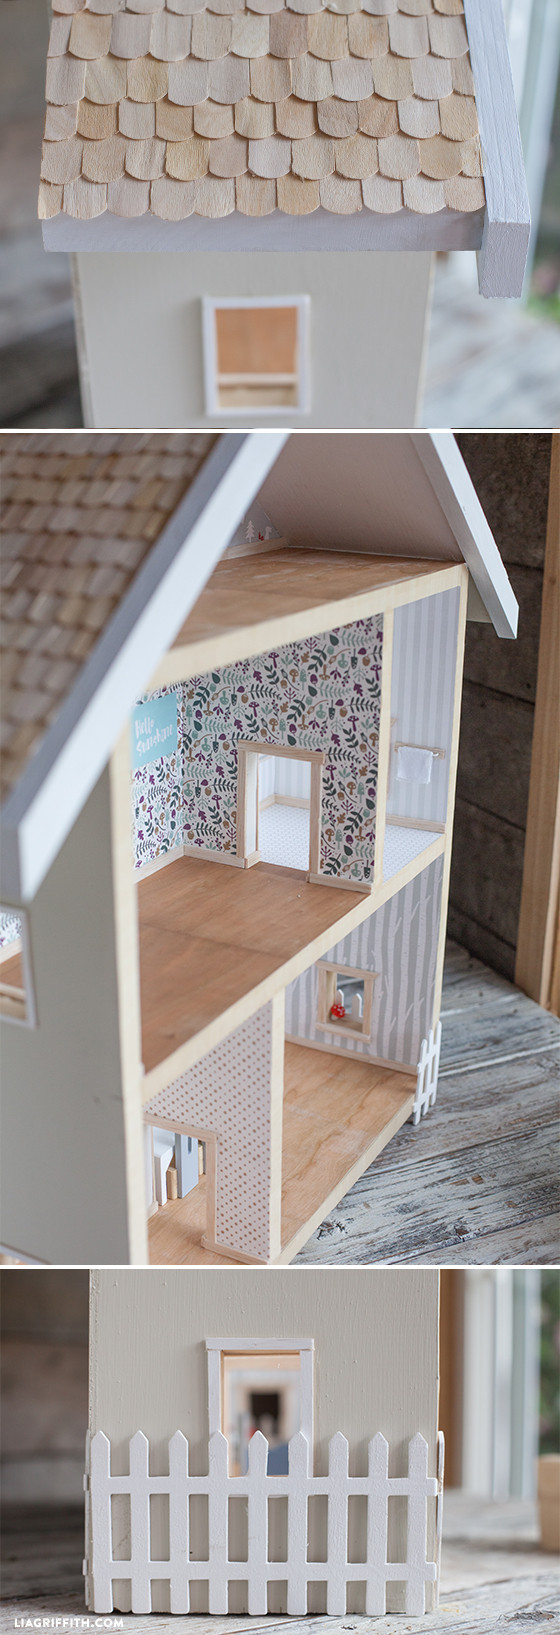 Dollhouse_Outter_Details